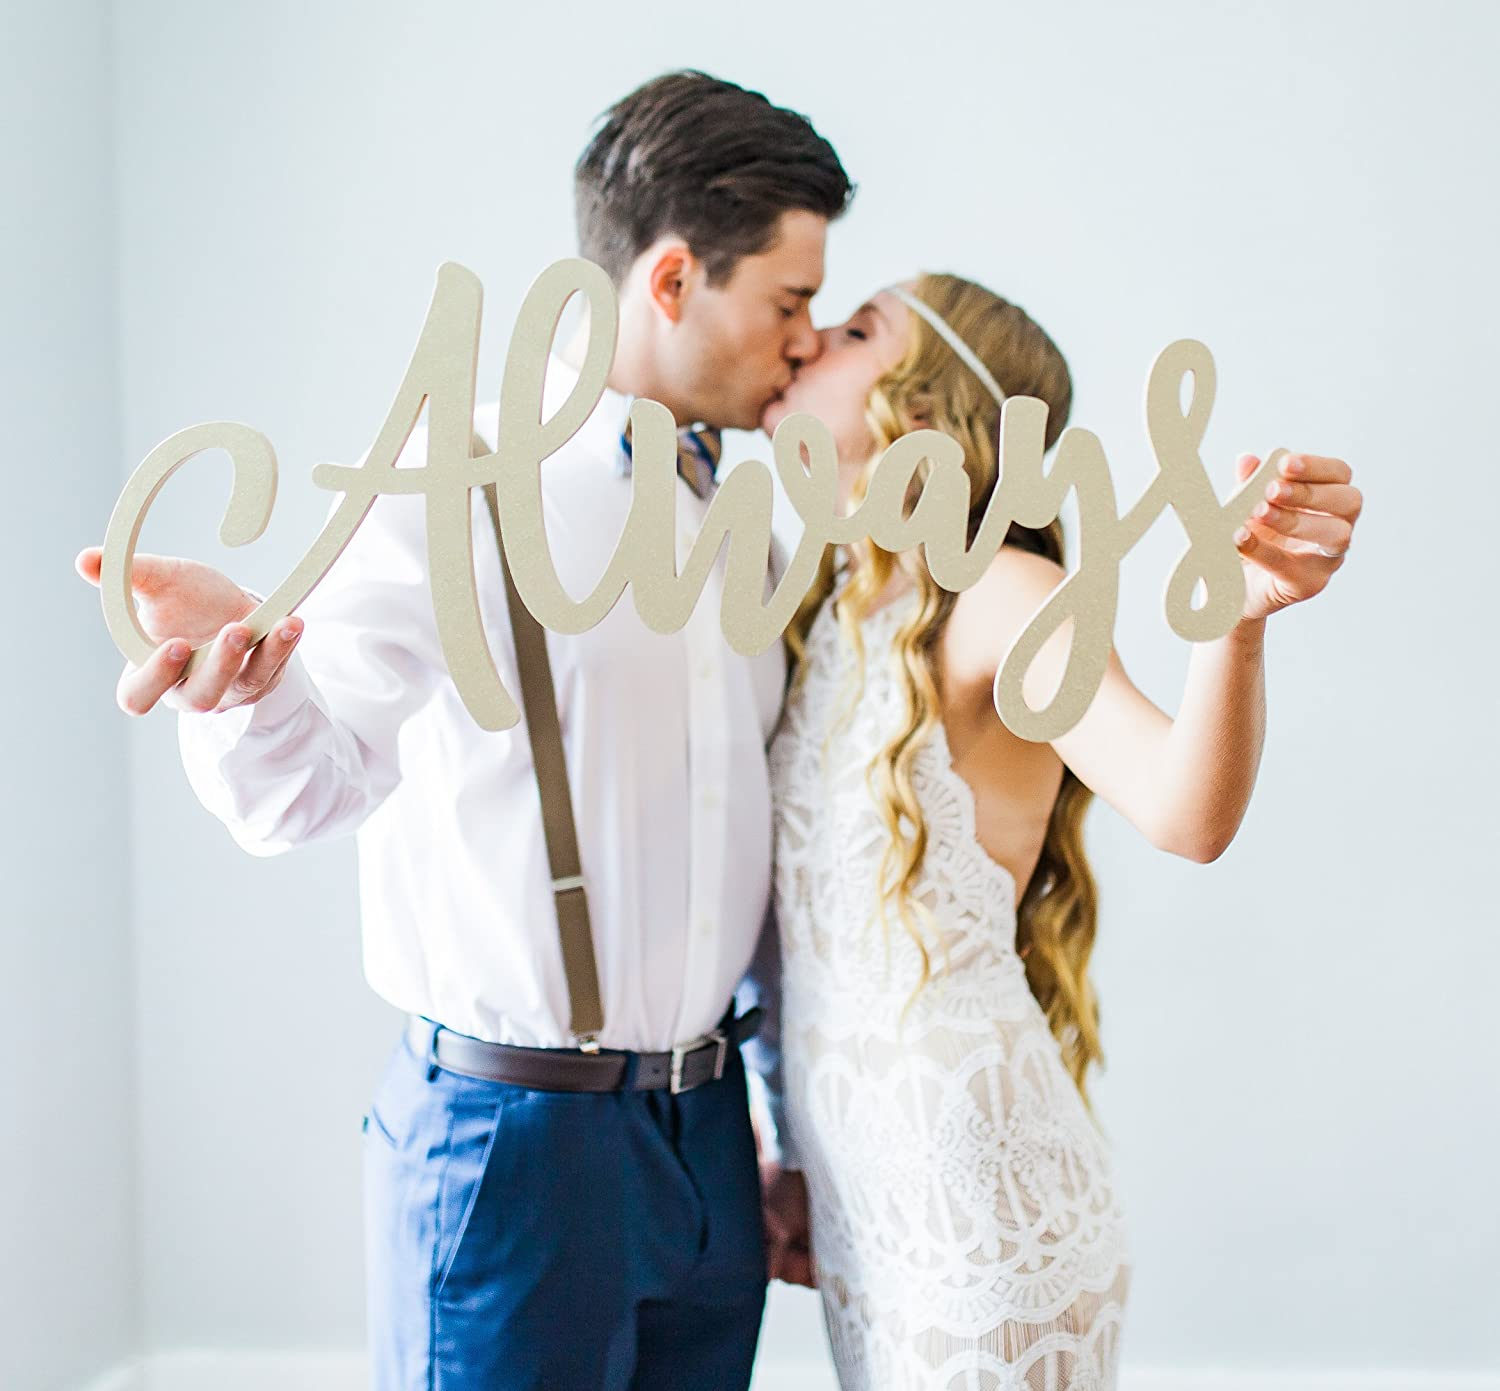 Photography Sign for Wedding Portrait Bride /& Groom Decoration Sign Cutout Words Wedding Sign Always Photo Prop